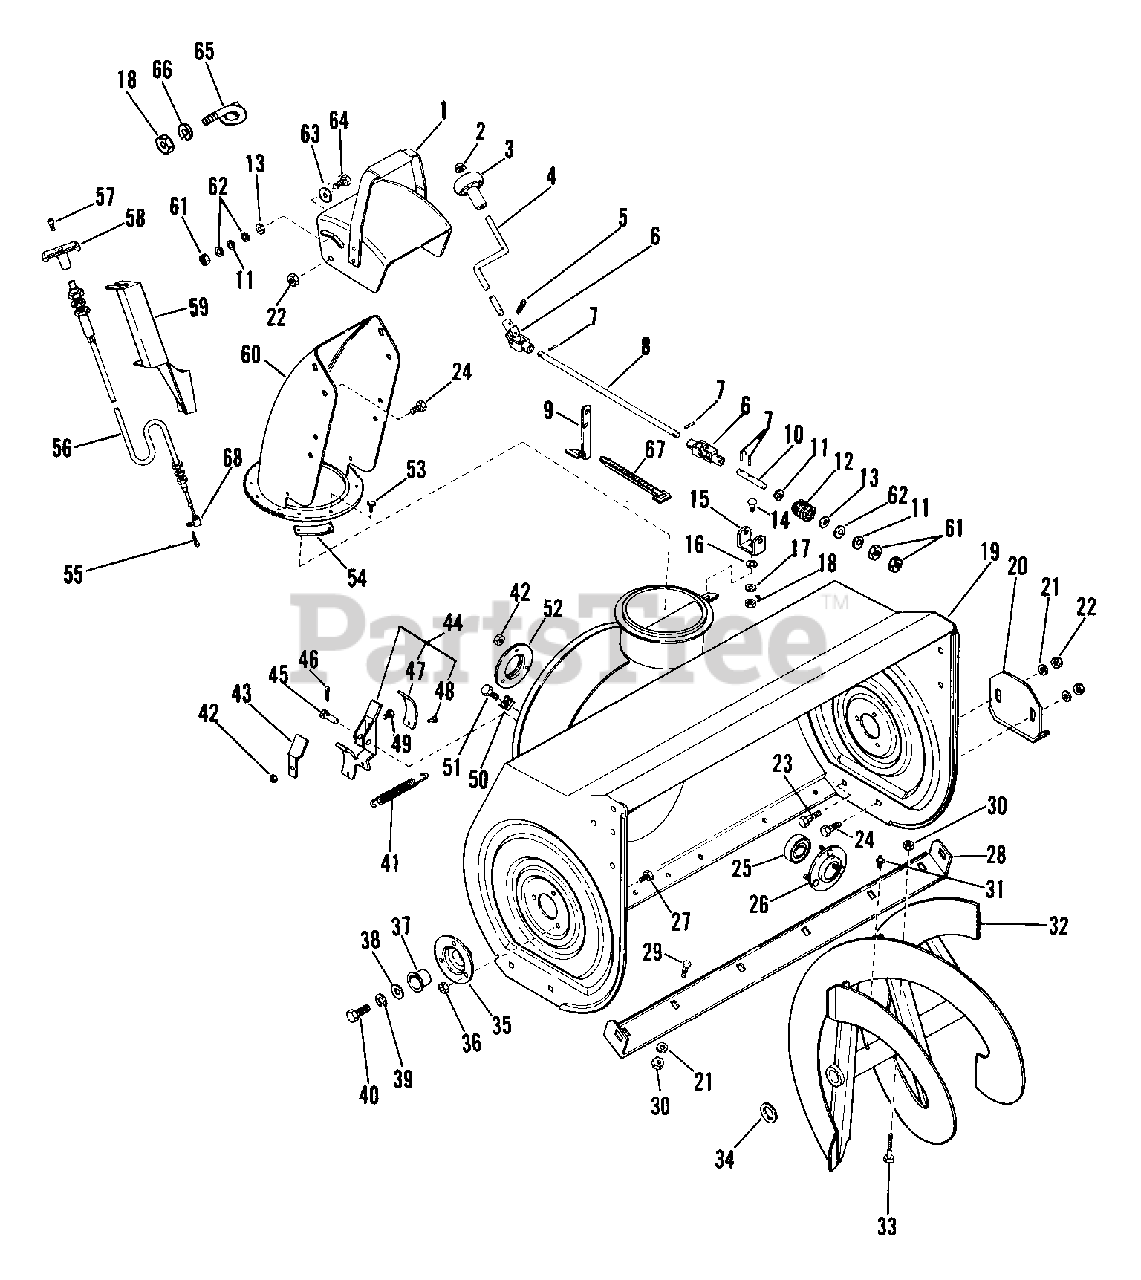 Ariens Parts on the Auger / Impeller Diagram for 924079